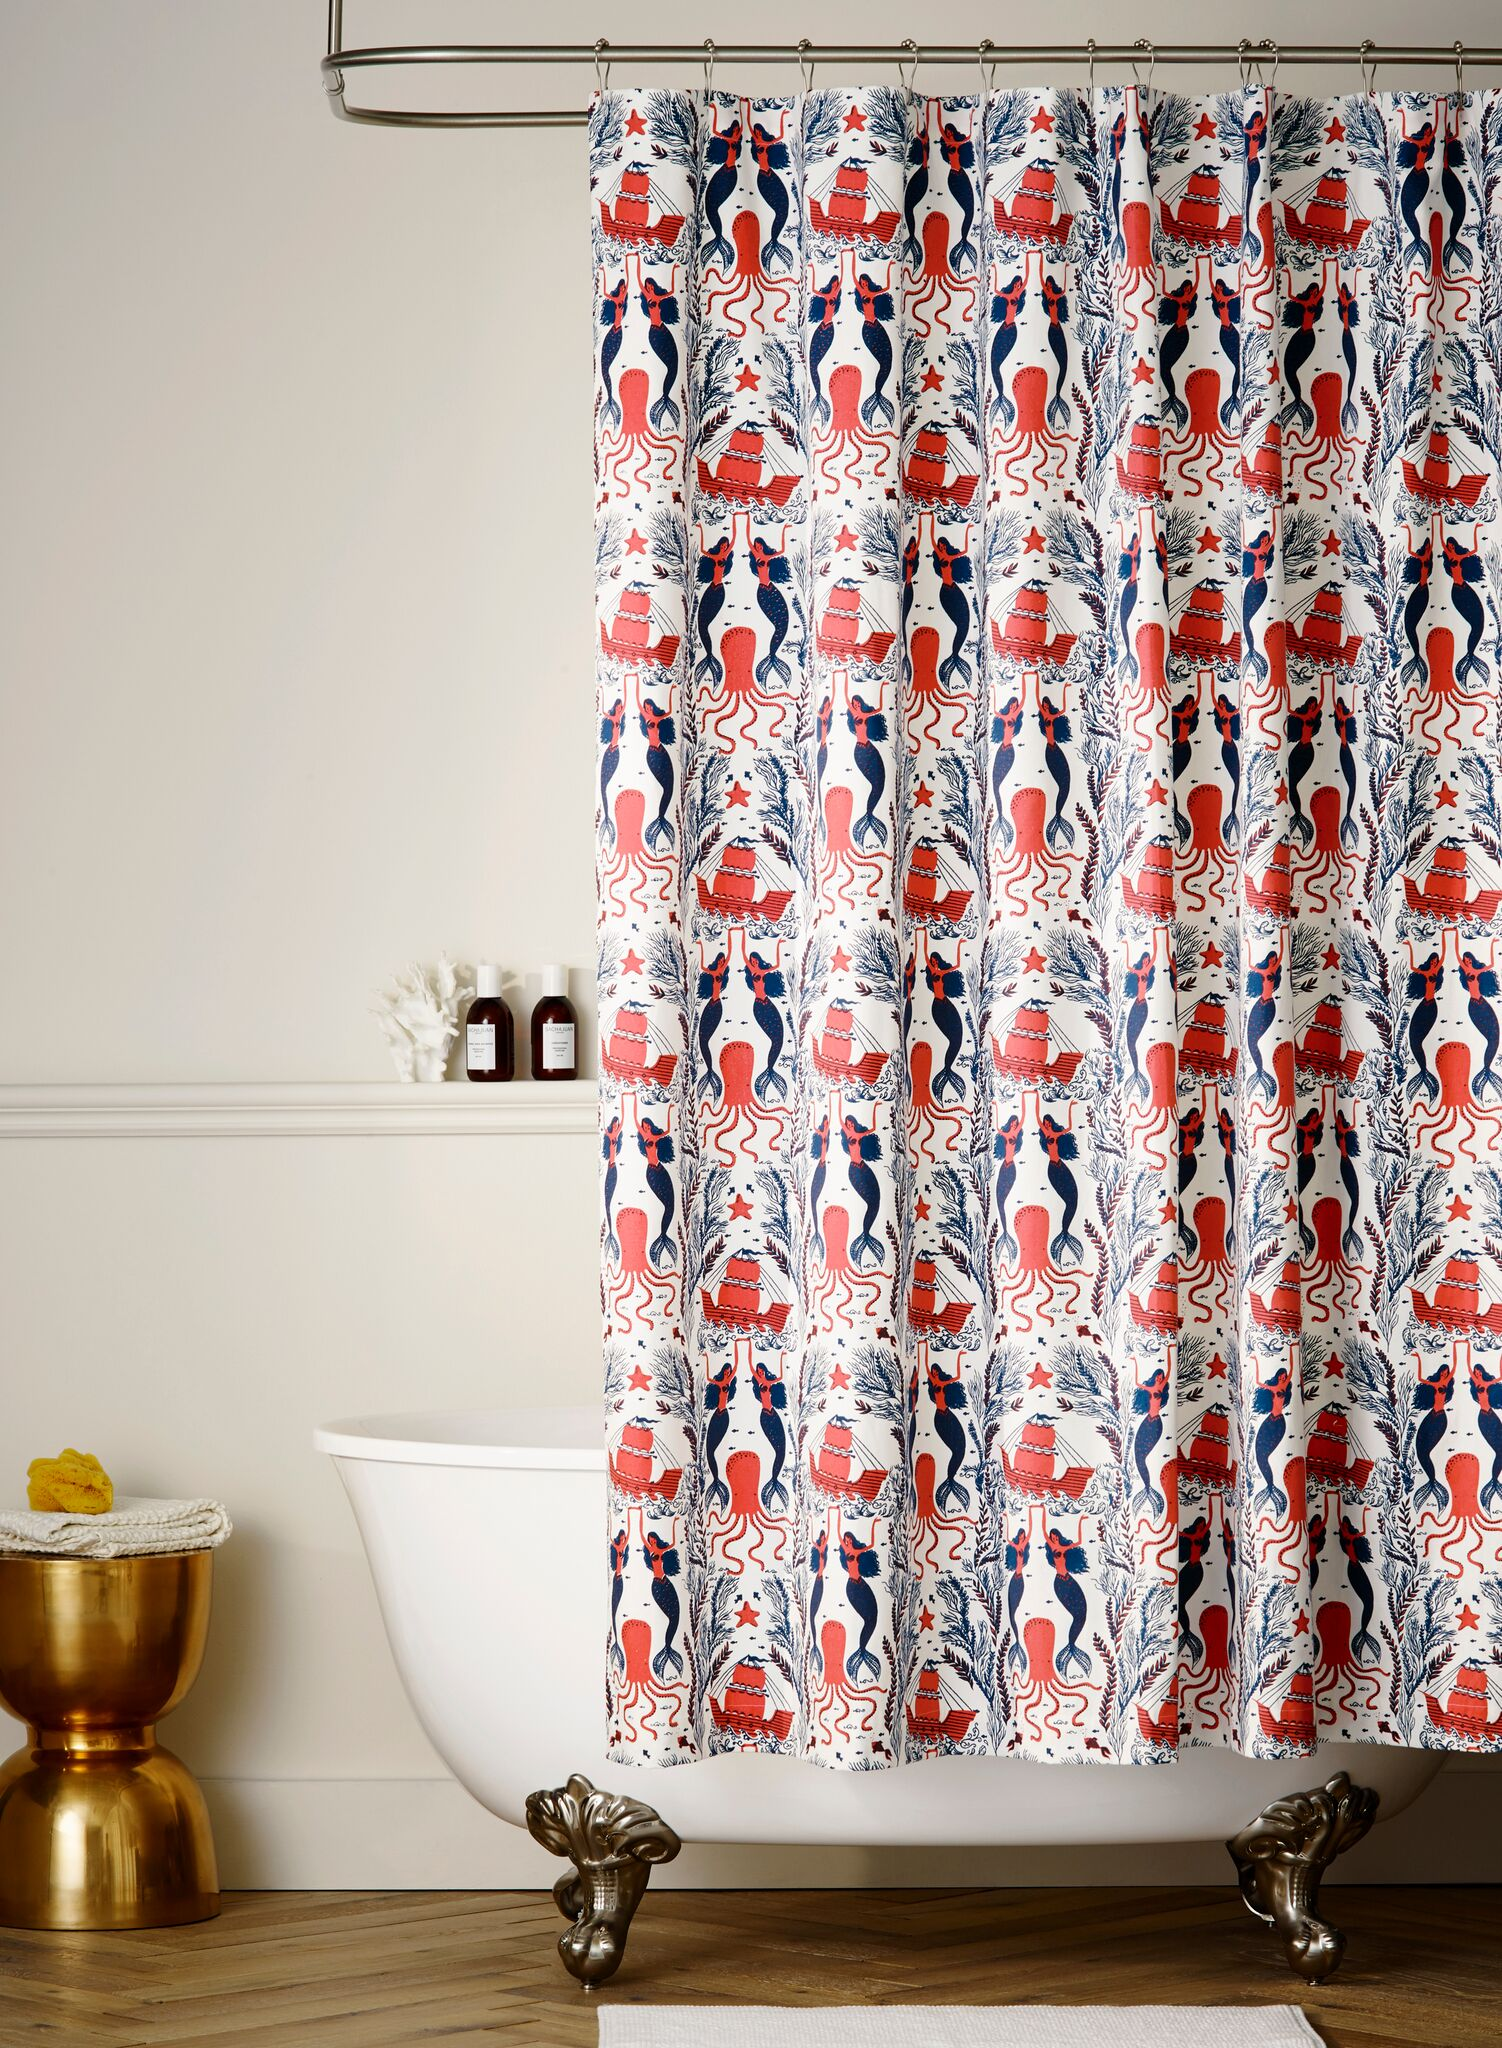 HW_MD002_ShowerCurtain_Mermaids_Coral.jpg